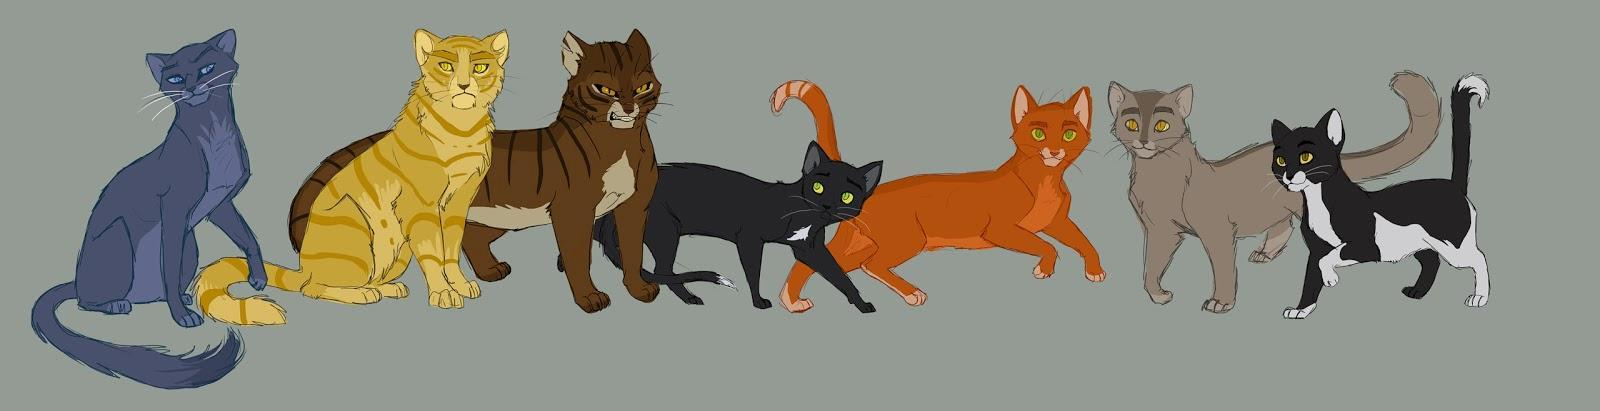 If you could be any Warrior Cat, who would it be?